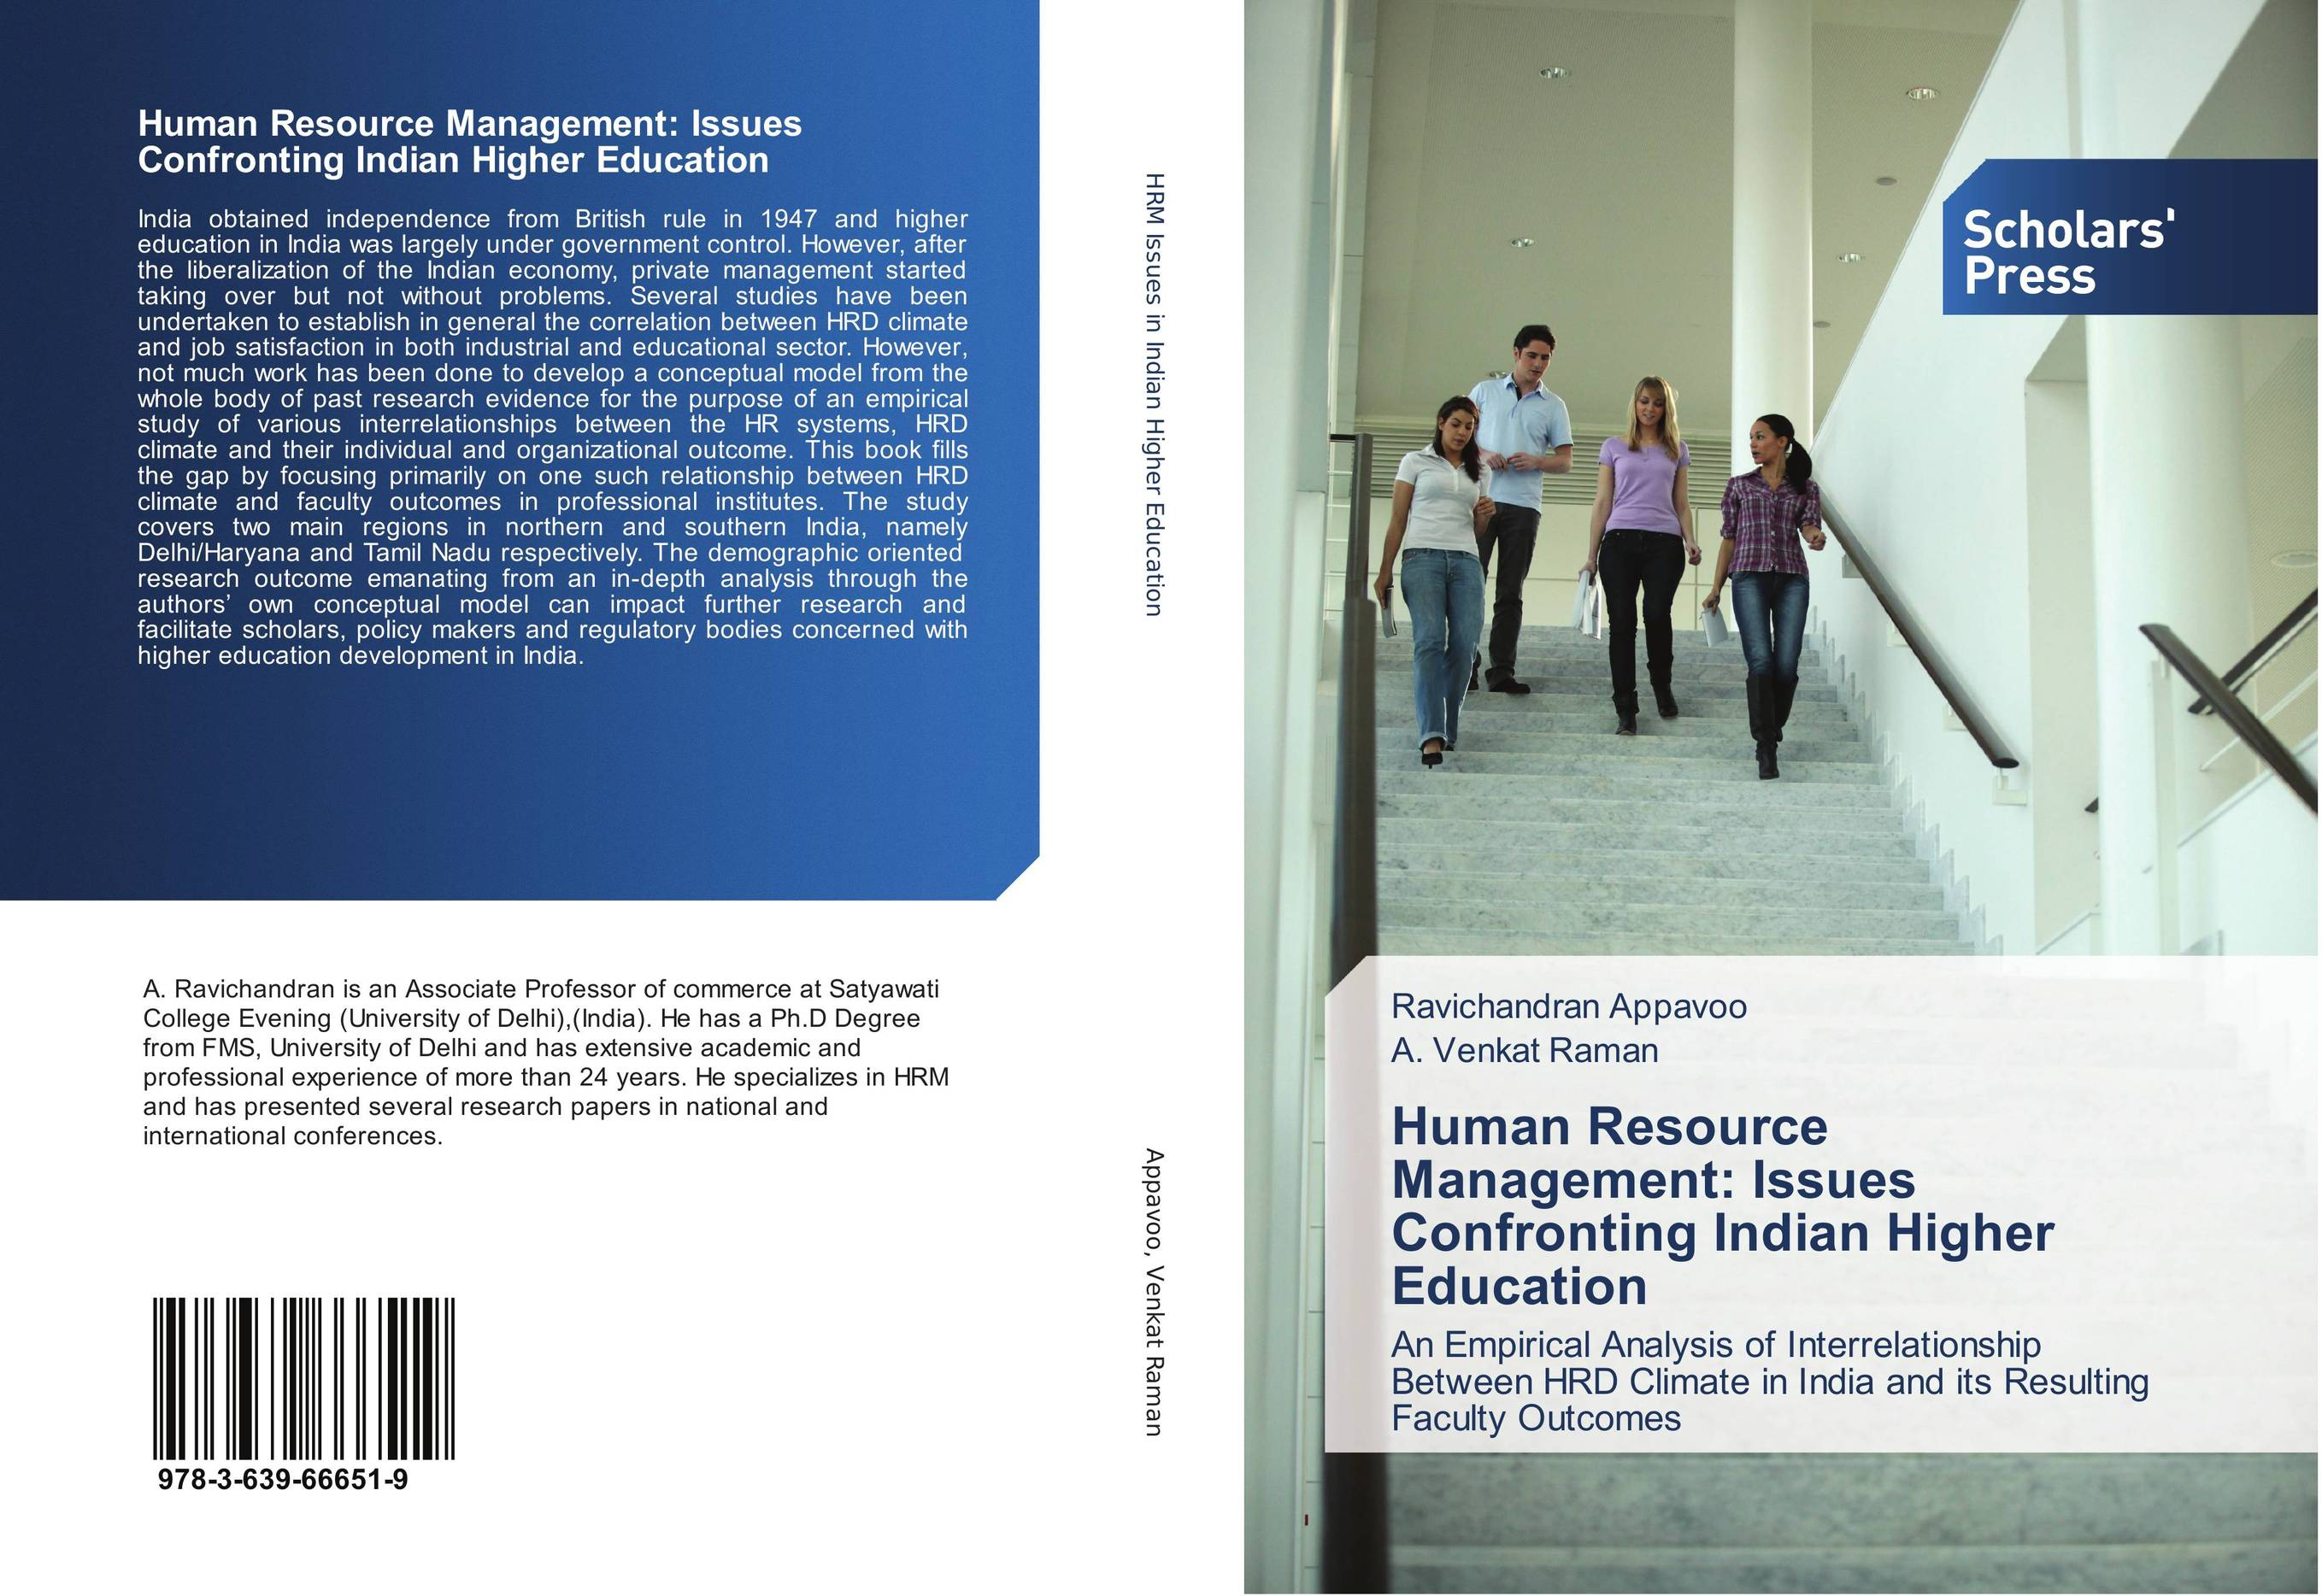 Human Resource Management: Issues Confronting Indian Higher Education